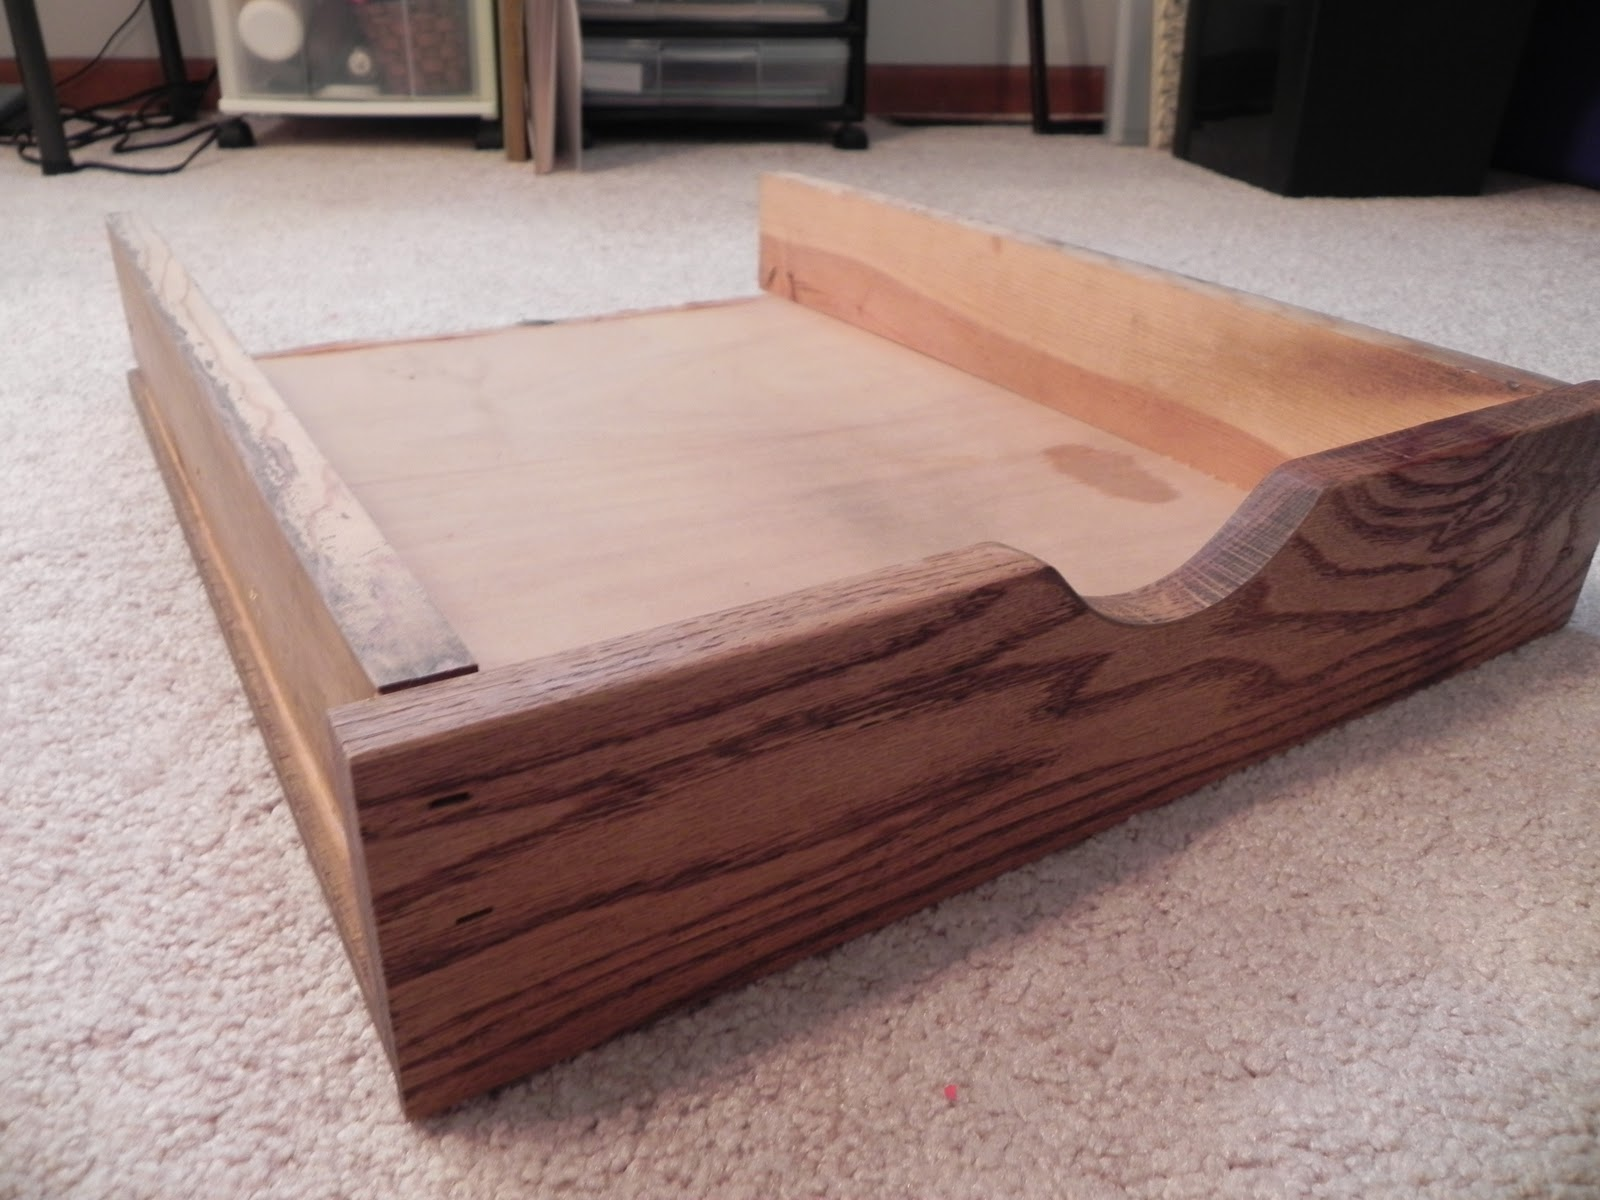 Woodworking Plans Can Crusher: Wood Plans Wishing Well Wooden Plans